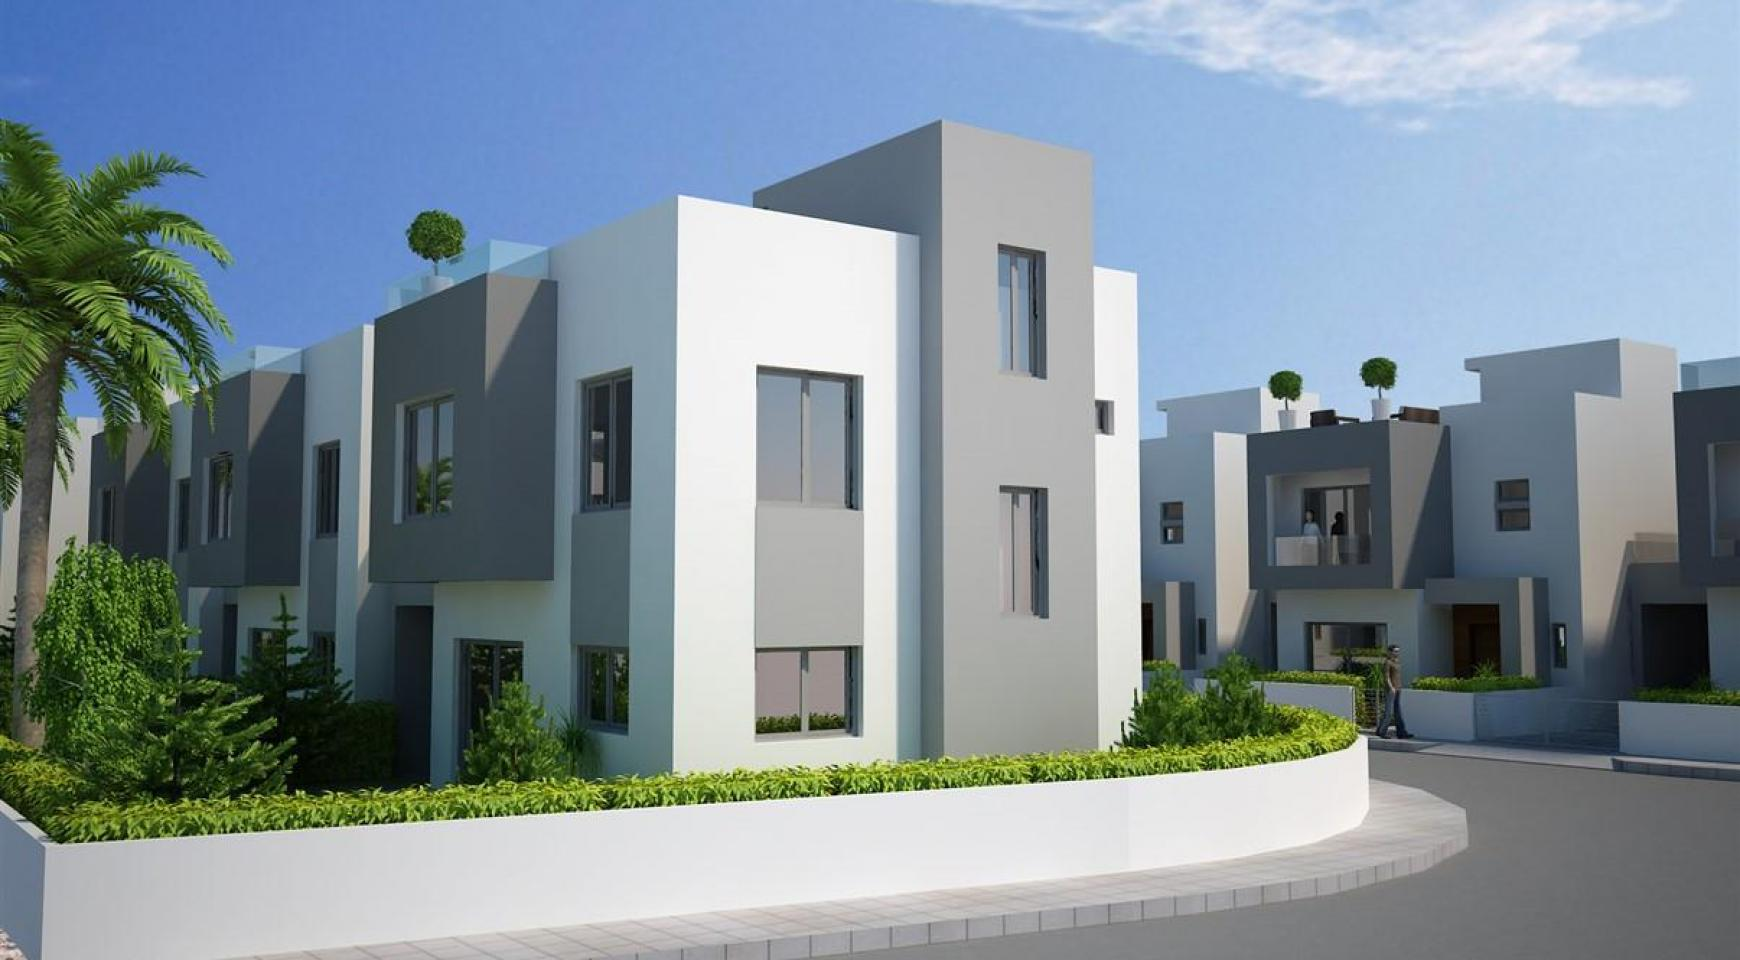 3 Bedroom Villa within a New Project - 31